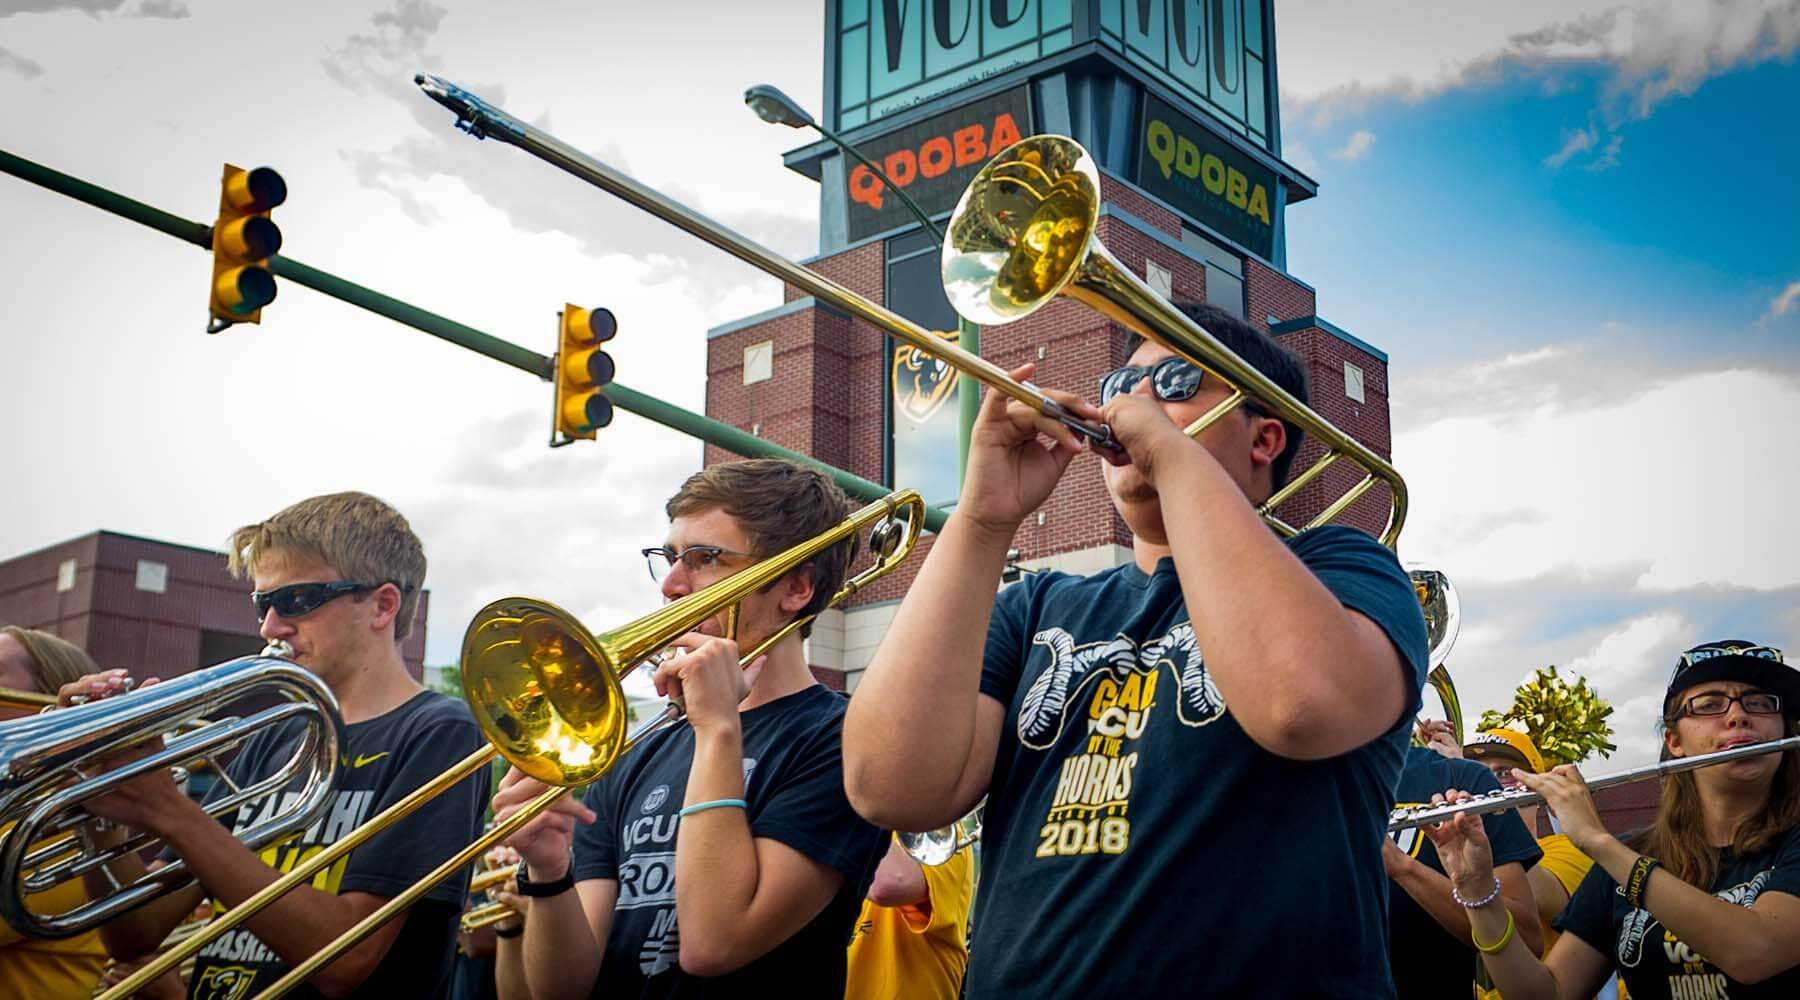 Members of VCU's pep band play their instruments as they march down Broad St.